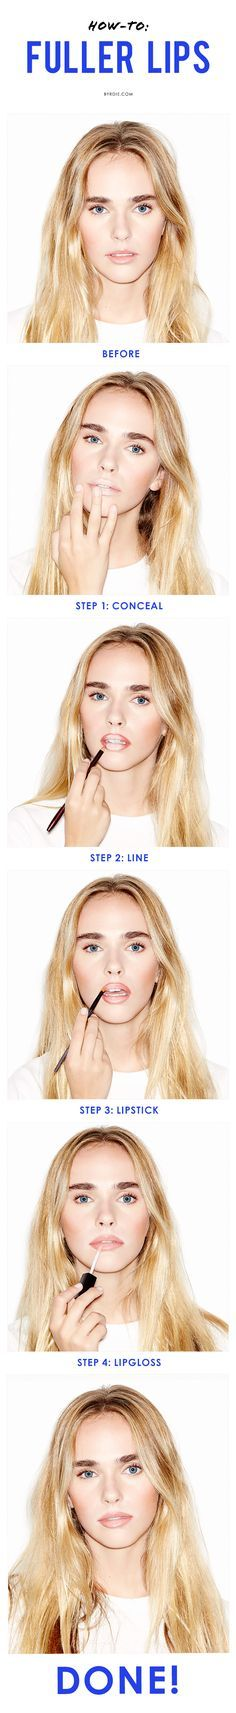 Get fuller lips with these easy steps! Have your lips looking plumper than ever with essential lip glosses and lipsticks from Walgreens.com!